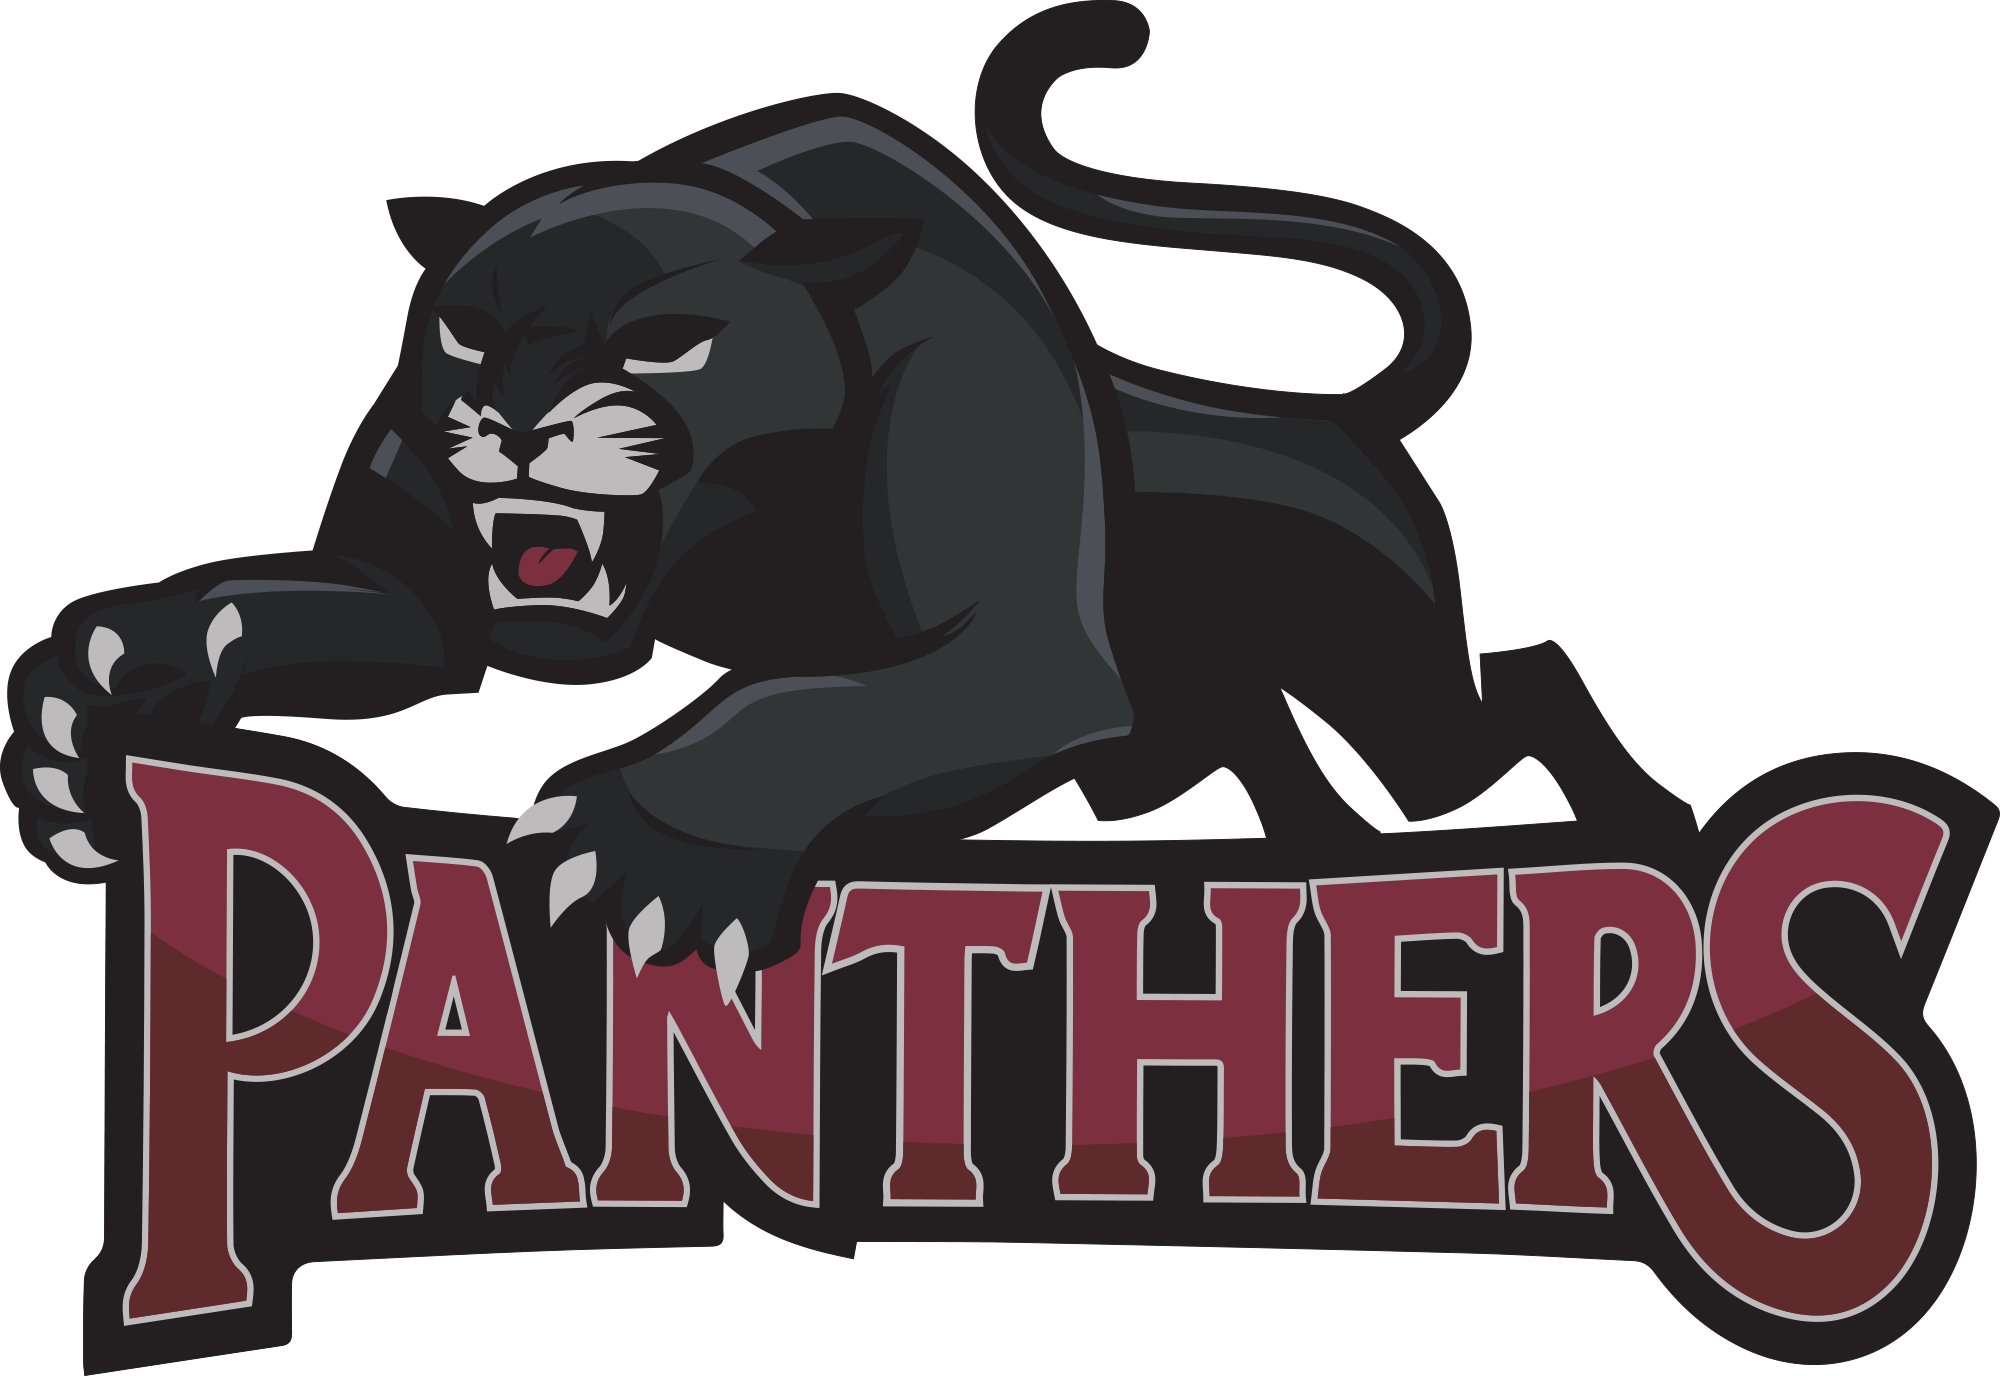 Panthers basketball clipart transparent Athletics | Northeast Bradford School District transparent